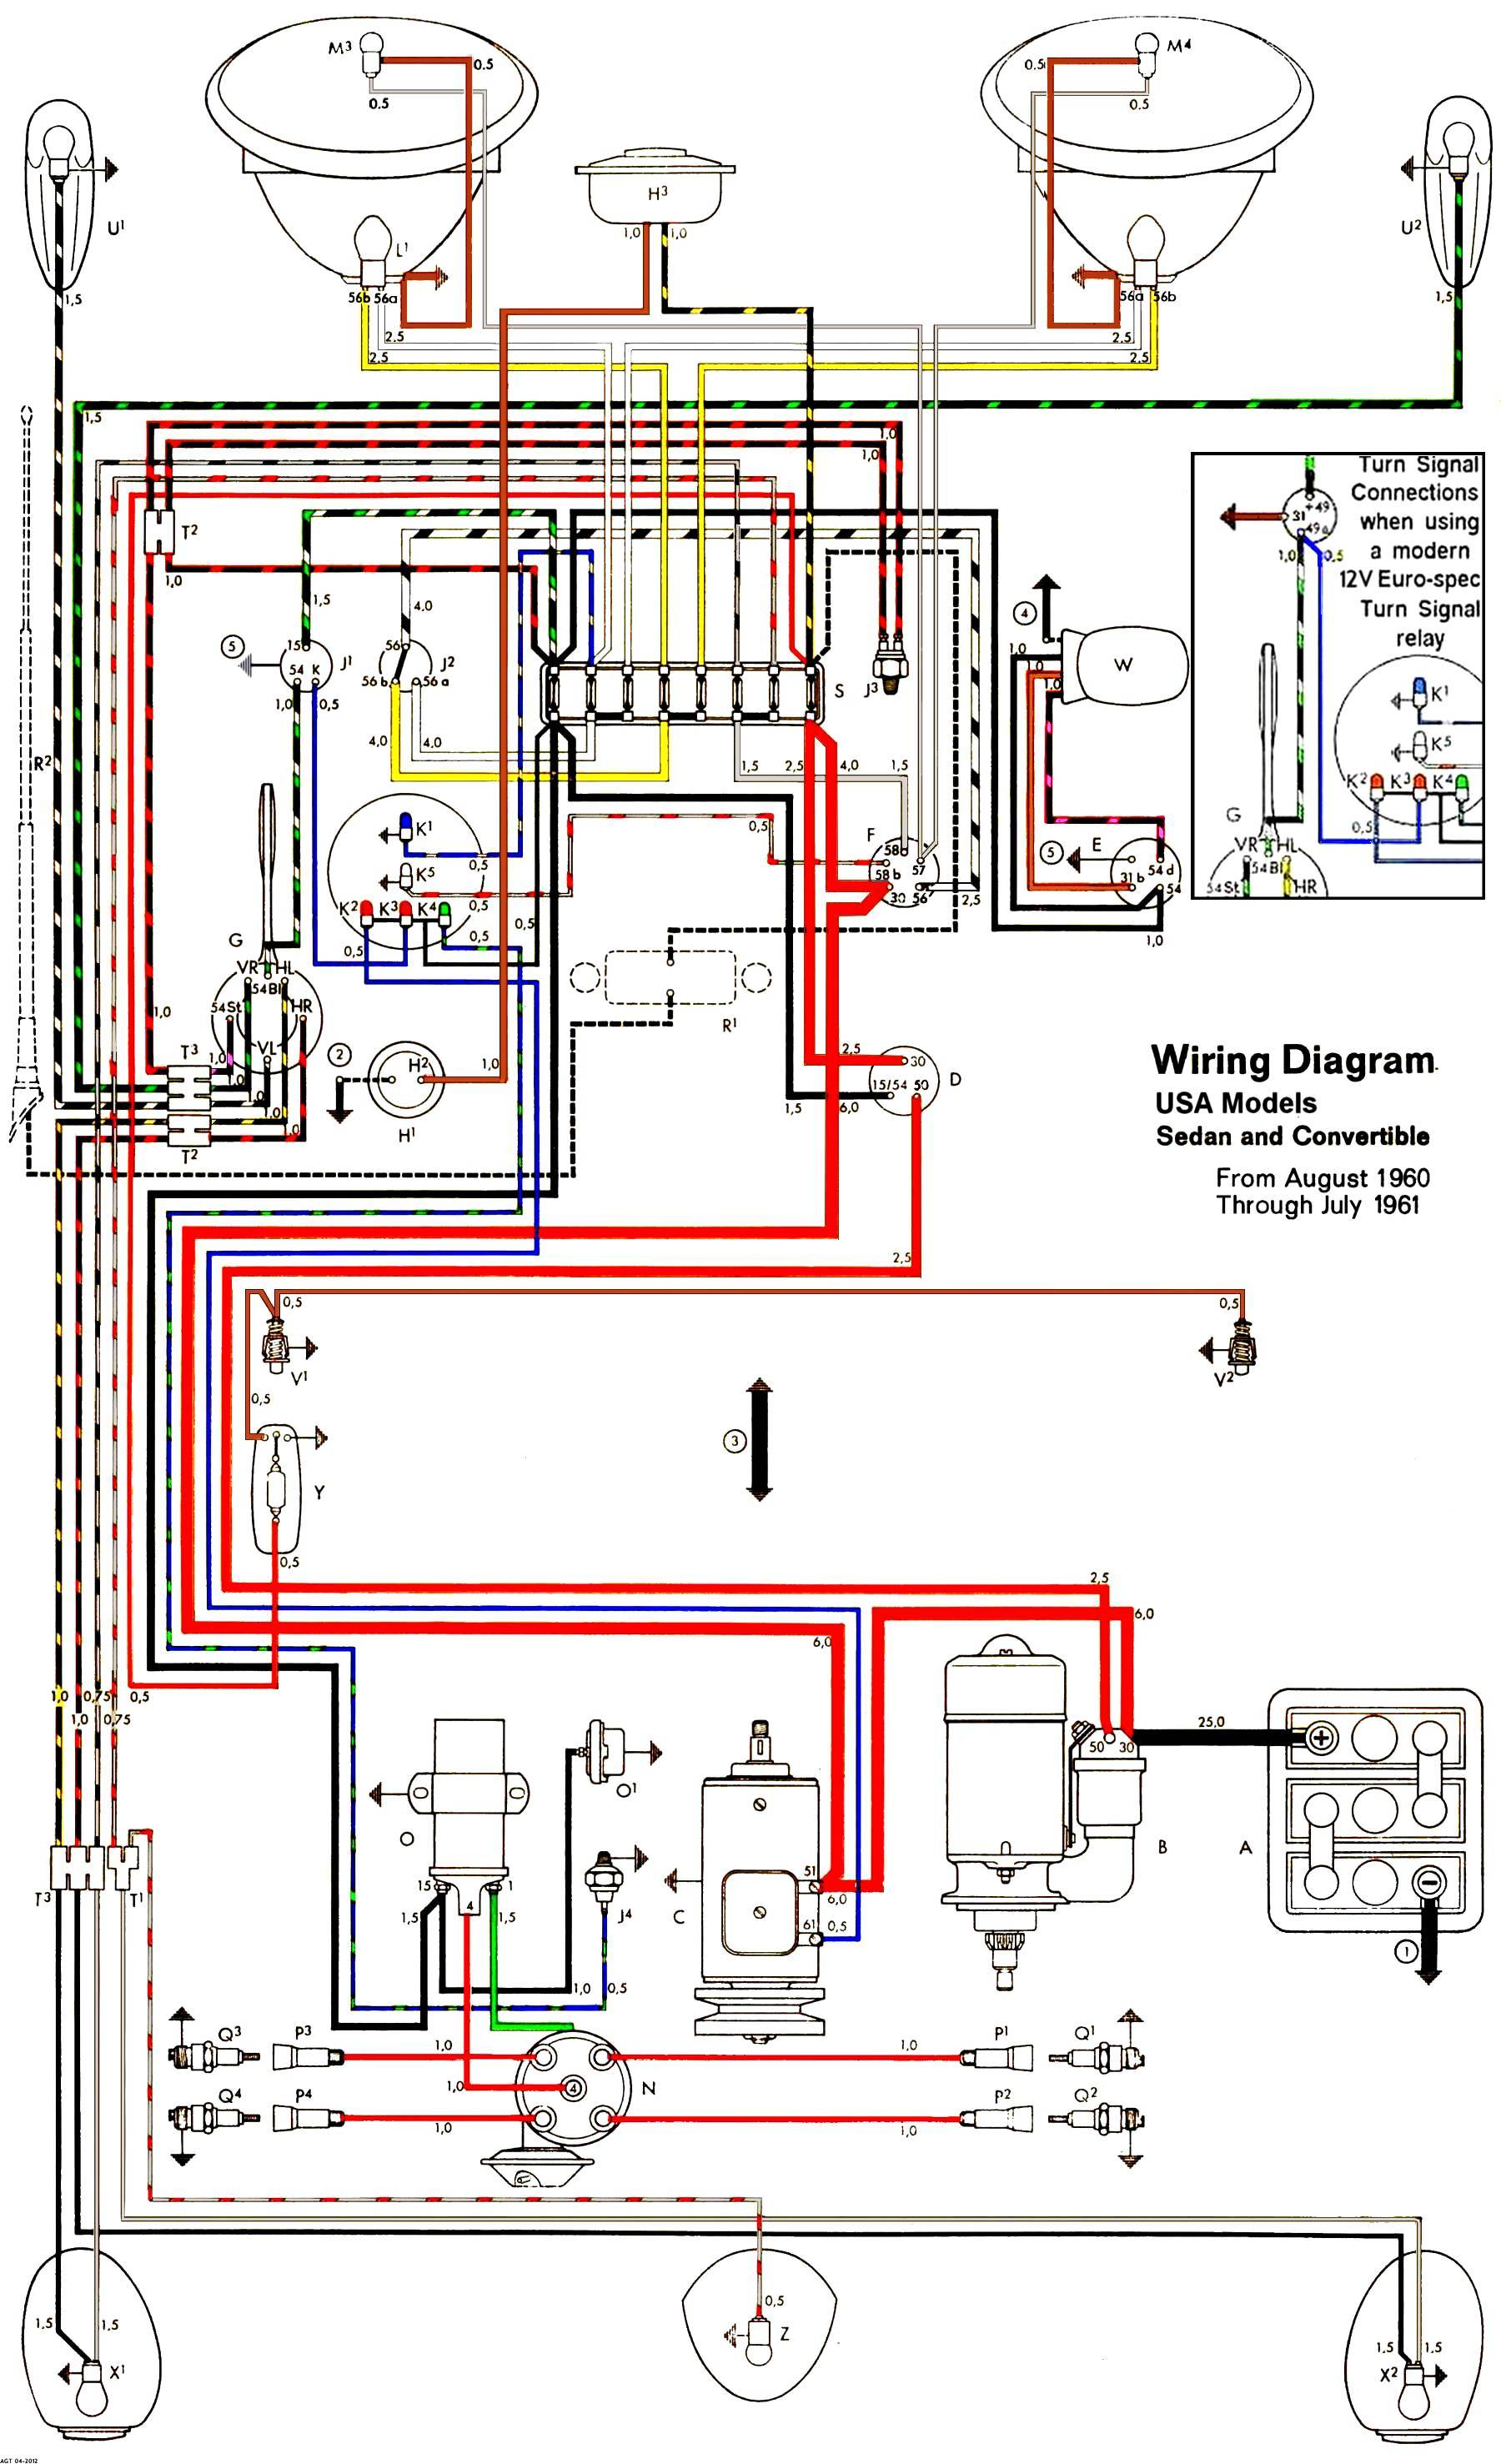 TheSamba.com :: Type 1 Wiring Diagrams on 1963 vw wiring diagram, vw beetle fuel injection diagram, 1999 vw passat wiring diagram, 1967 vw wiring diagram, 1974 vw engine diagram, alfa romeo spider wiring diagram, vw rabbit wiring-diagram, vw turn signal wiring diagram, vw distributor diagram, fiat uno wiring diagram, vw buggy wiring-diagram, volkswagen fuel diagram, 1973 vw wiring diagram, porsche cayenne wiring diagram, vw starter wiring diagram, vw type 2 wiring diagram, vw beetle engine diagram, 68 vw wiring diagram, type 3 wiring diagram, vw light switch wiring,